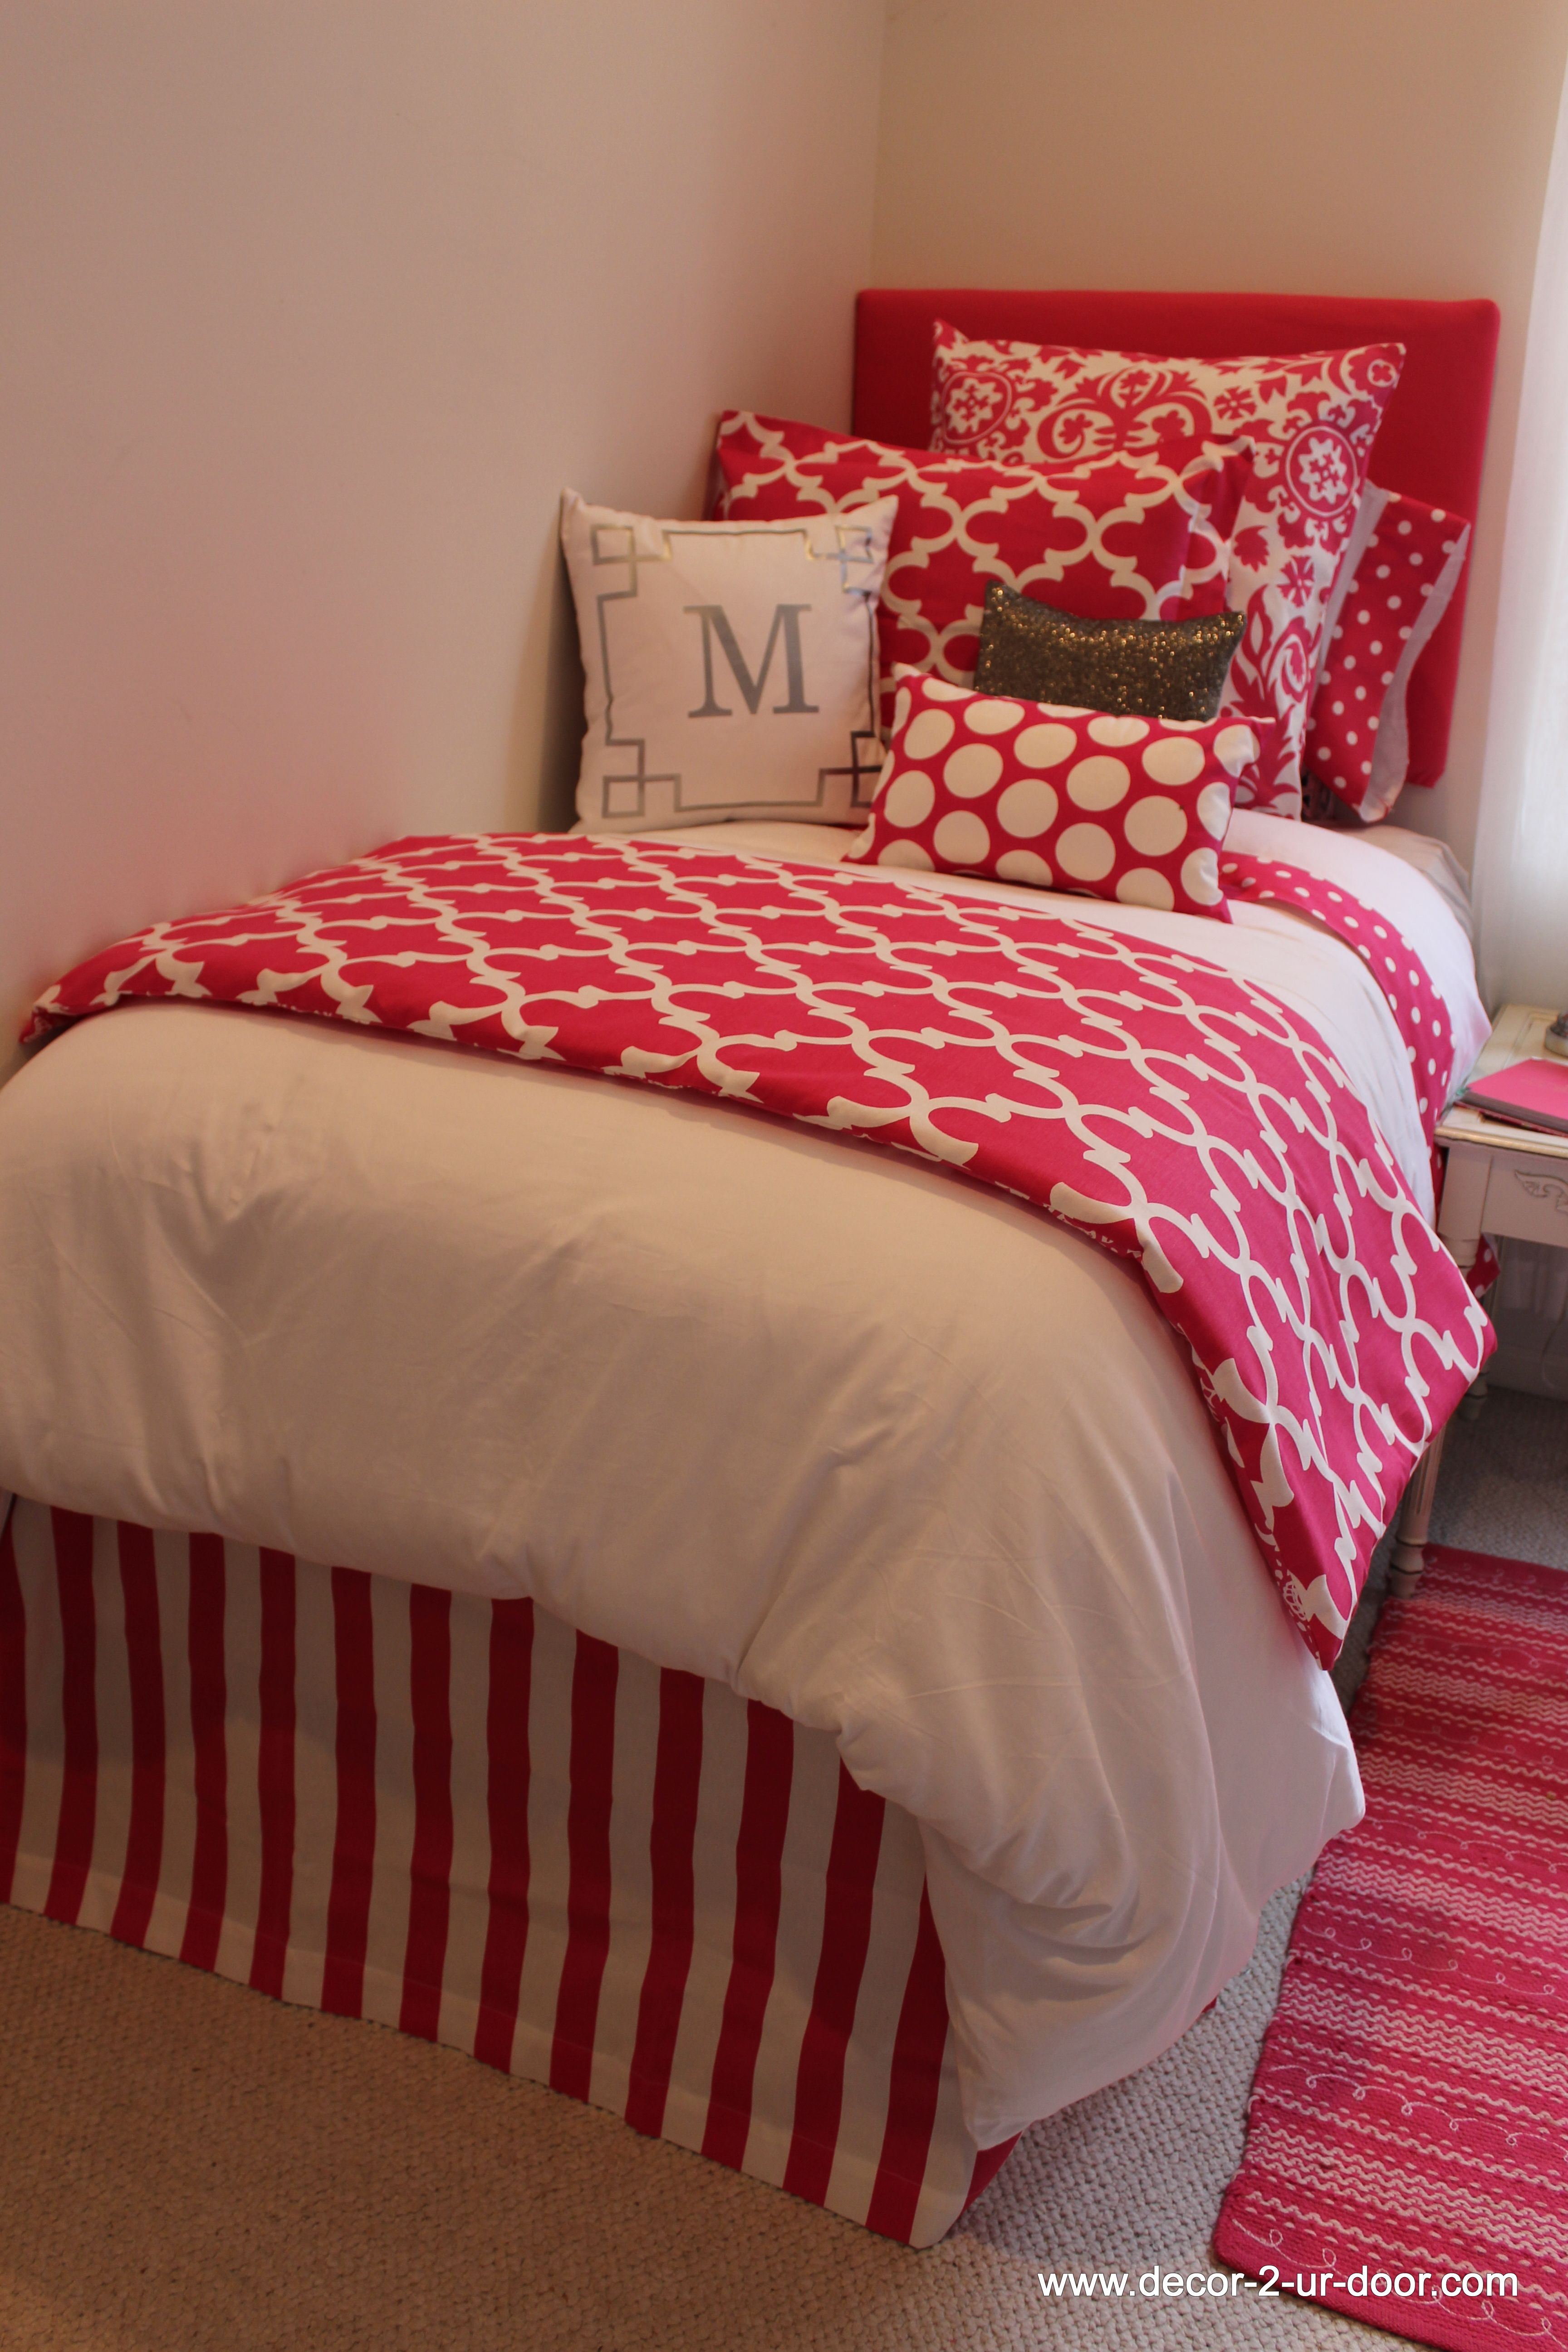 Pin by decor 2 ur door on 2014 dorm room designs pinterest - Hot pink and blue bedding ...